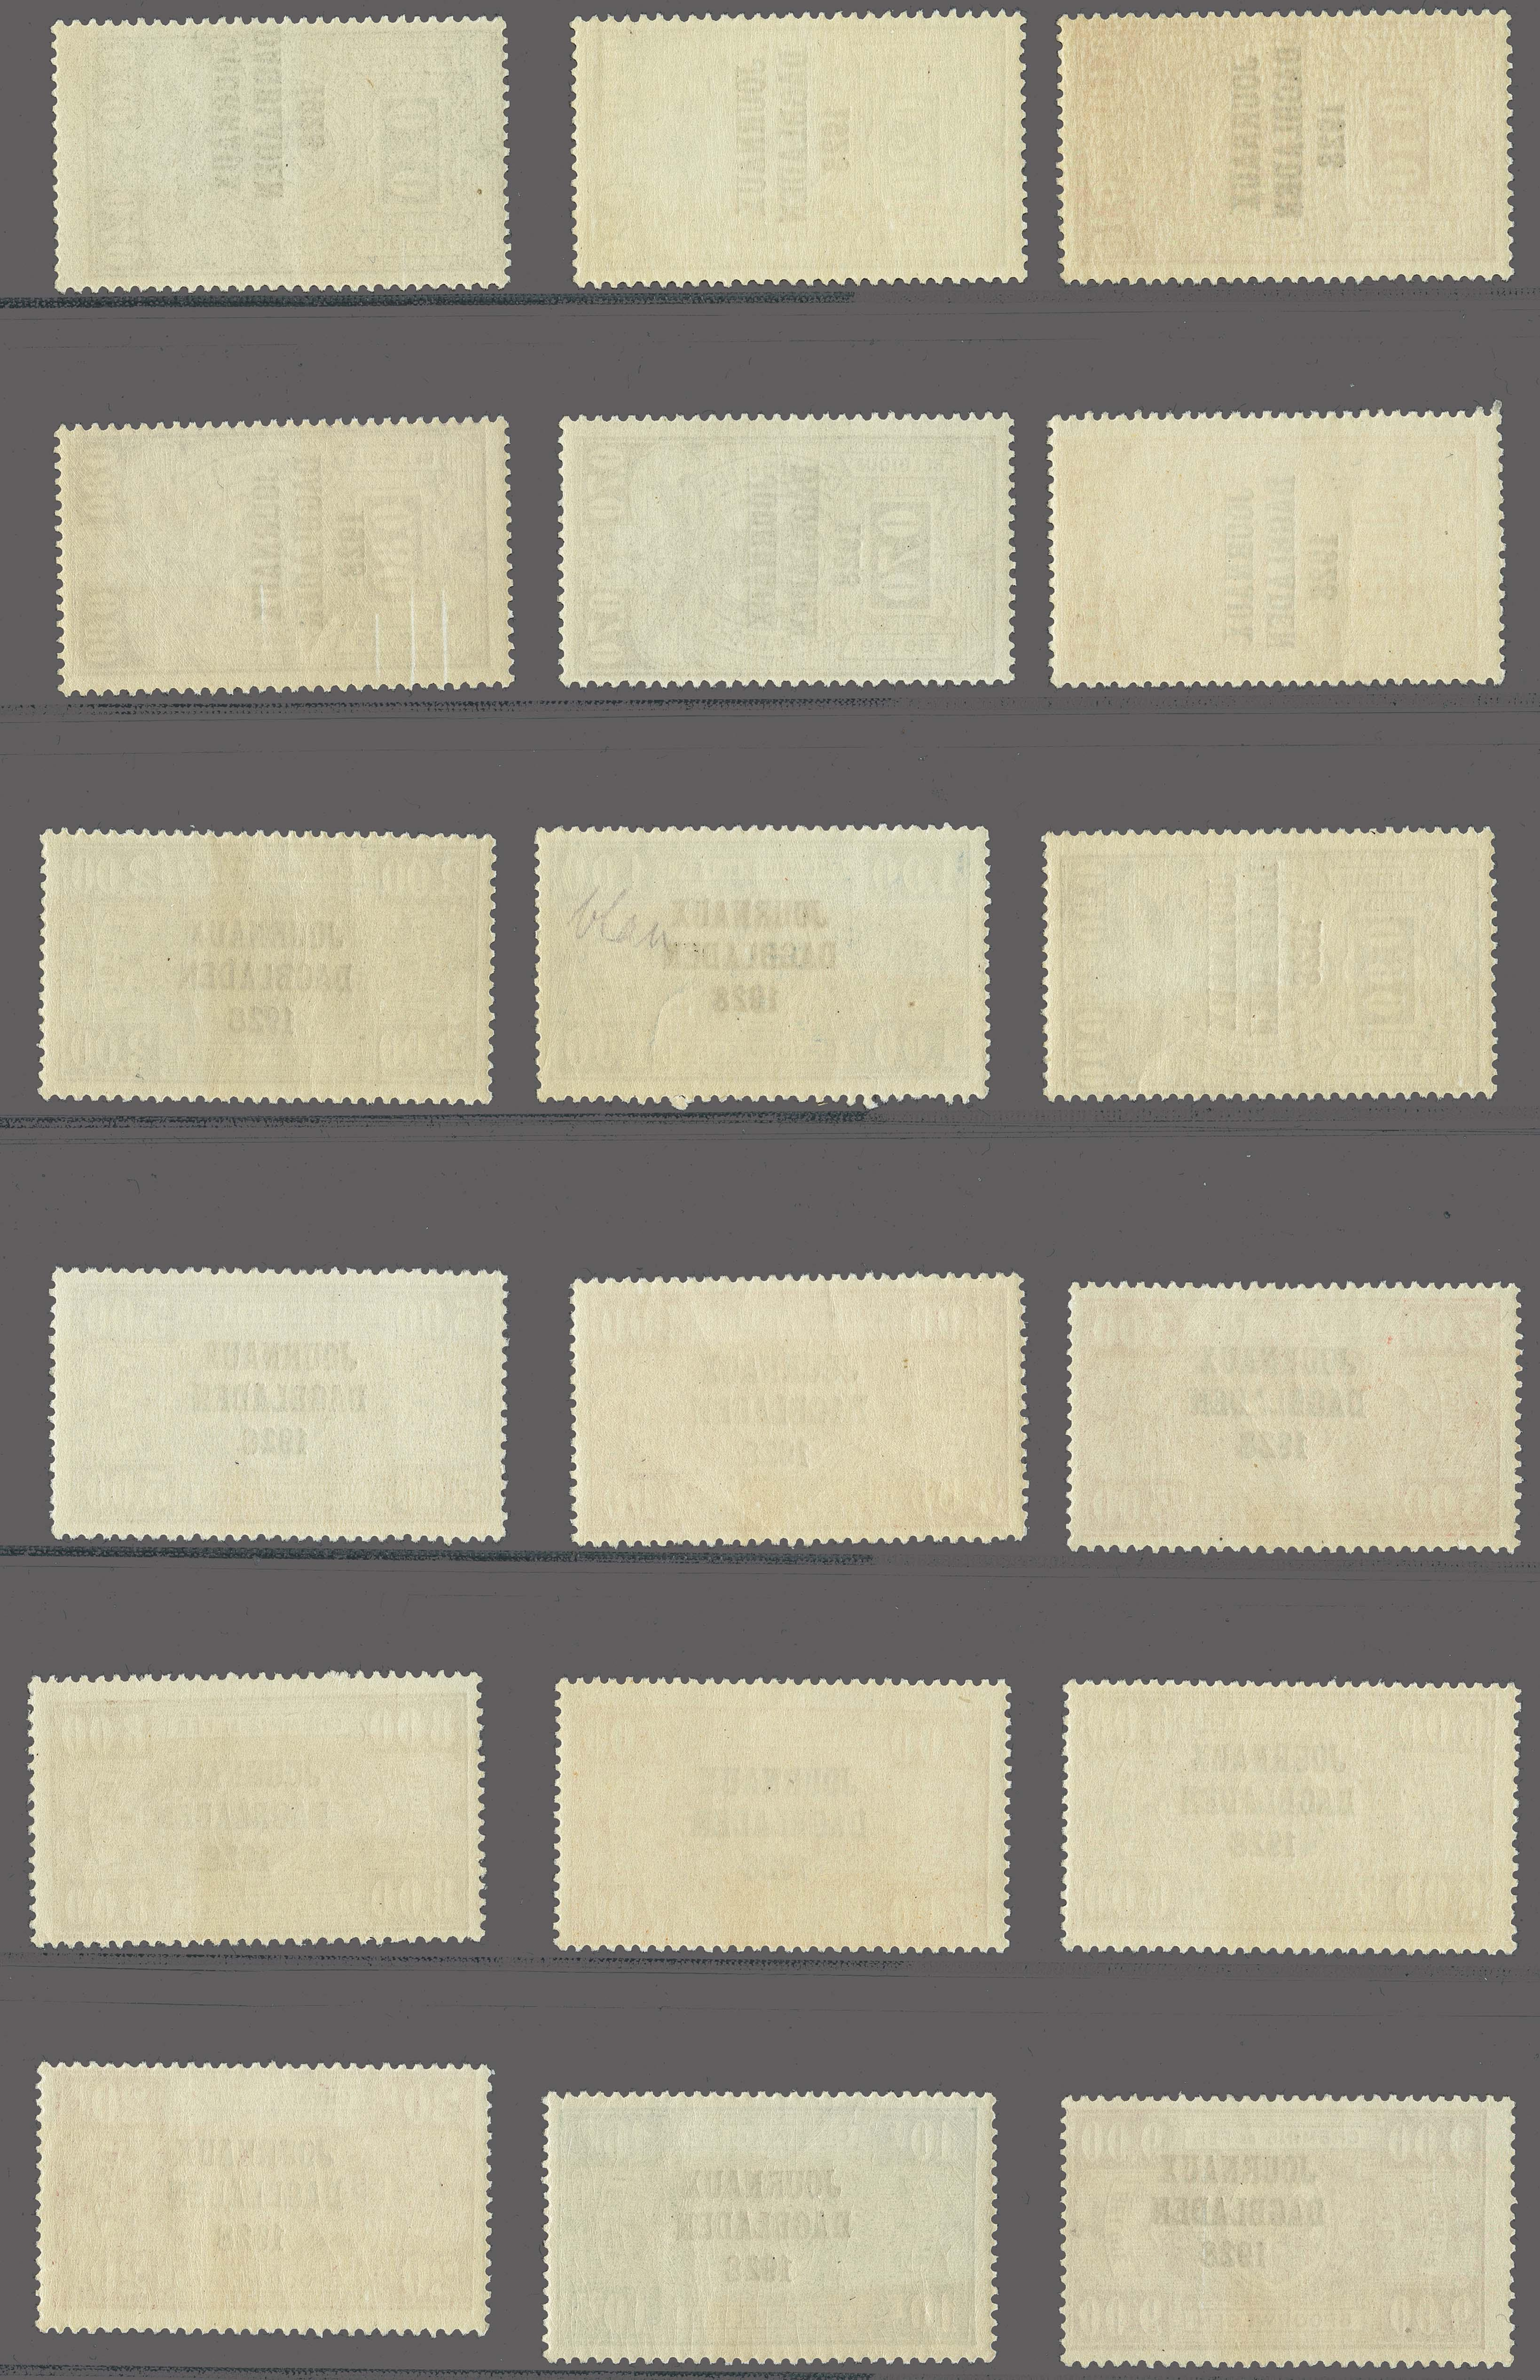 Lot 19 - Belgium and former colonies Belgium -  Corinphila Veilingen Auction 250-253 - Day 1 - Foreign countries